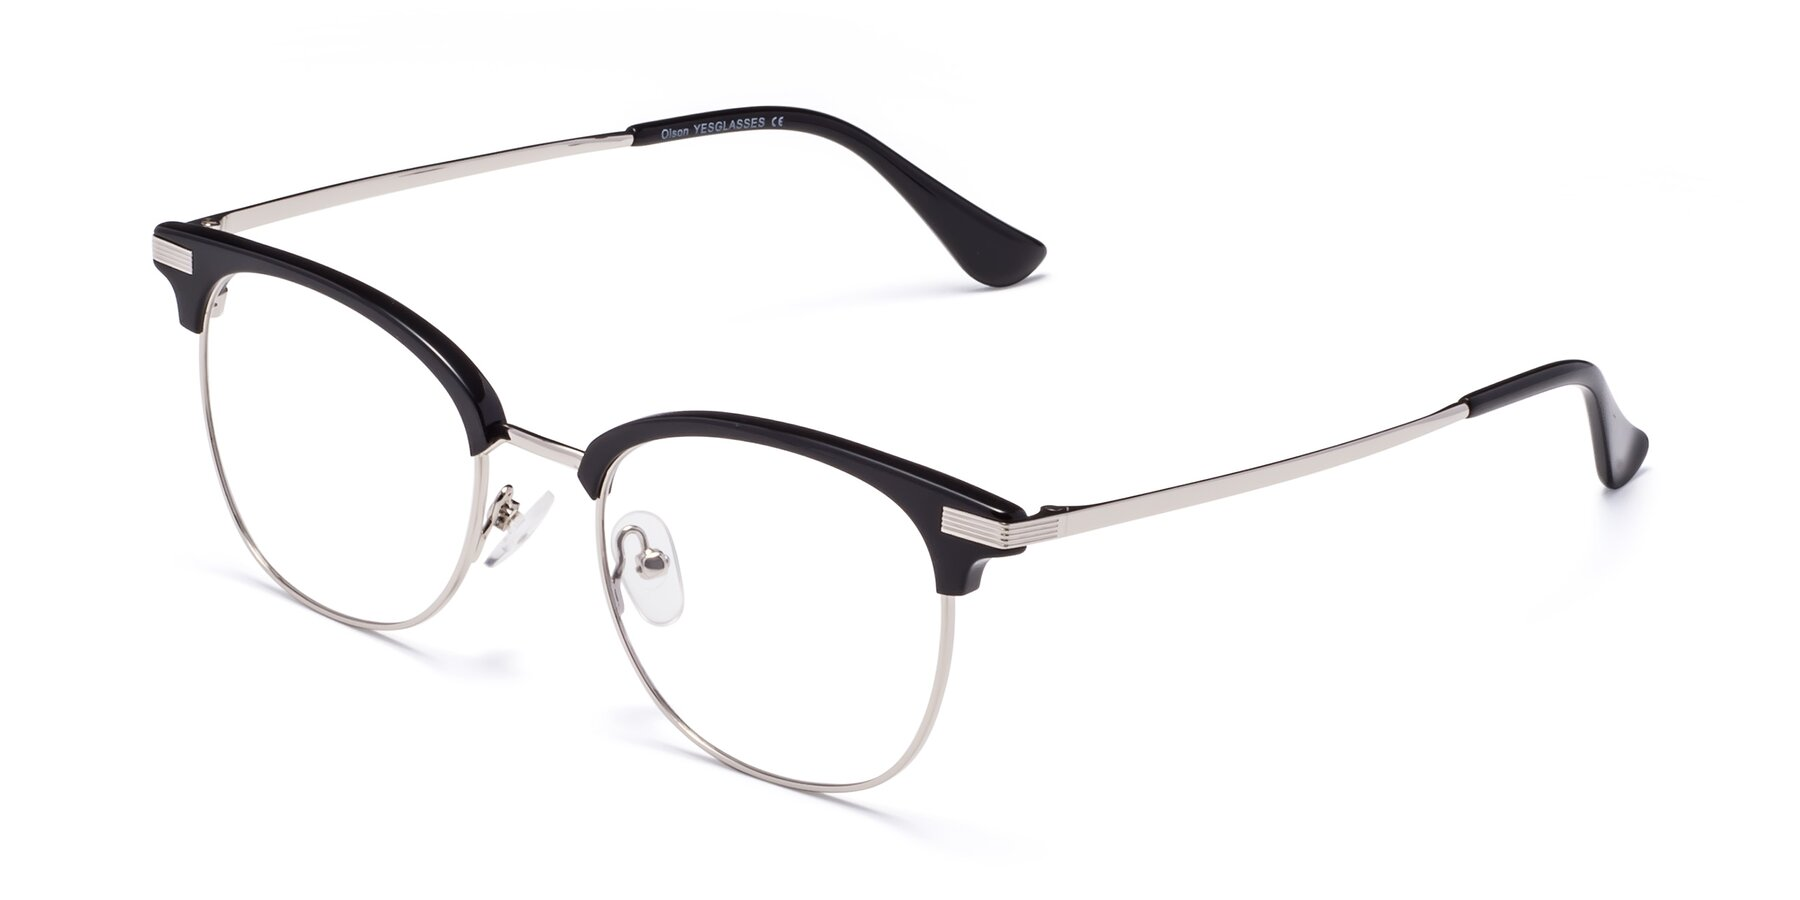 Angle of Olson in Black-Silver with Clear Blue Light Blocking Lenses